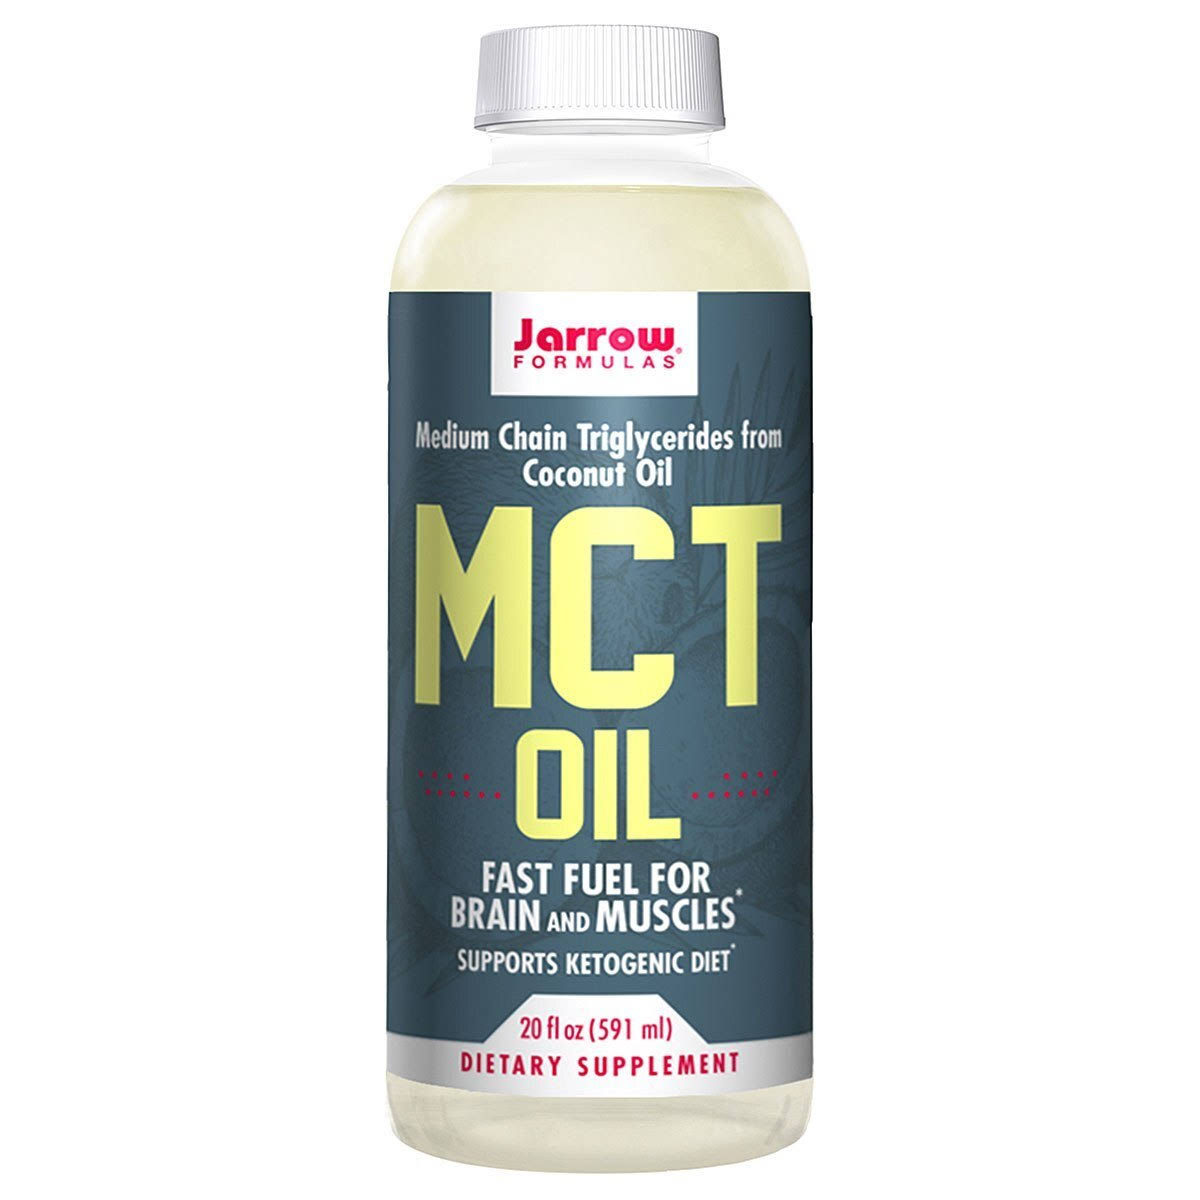 Jarrow Formulas MCT Oil Supports Brain and Muscles - 20 fl oz